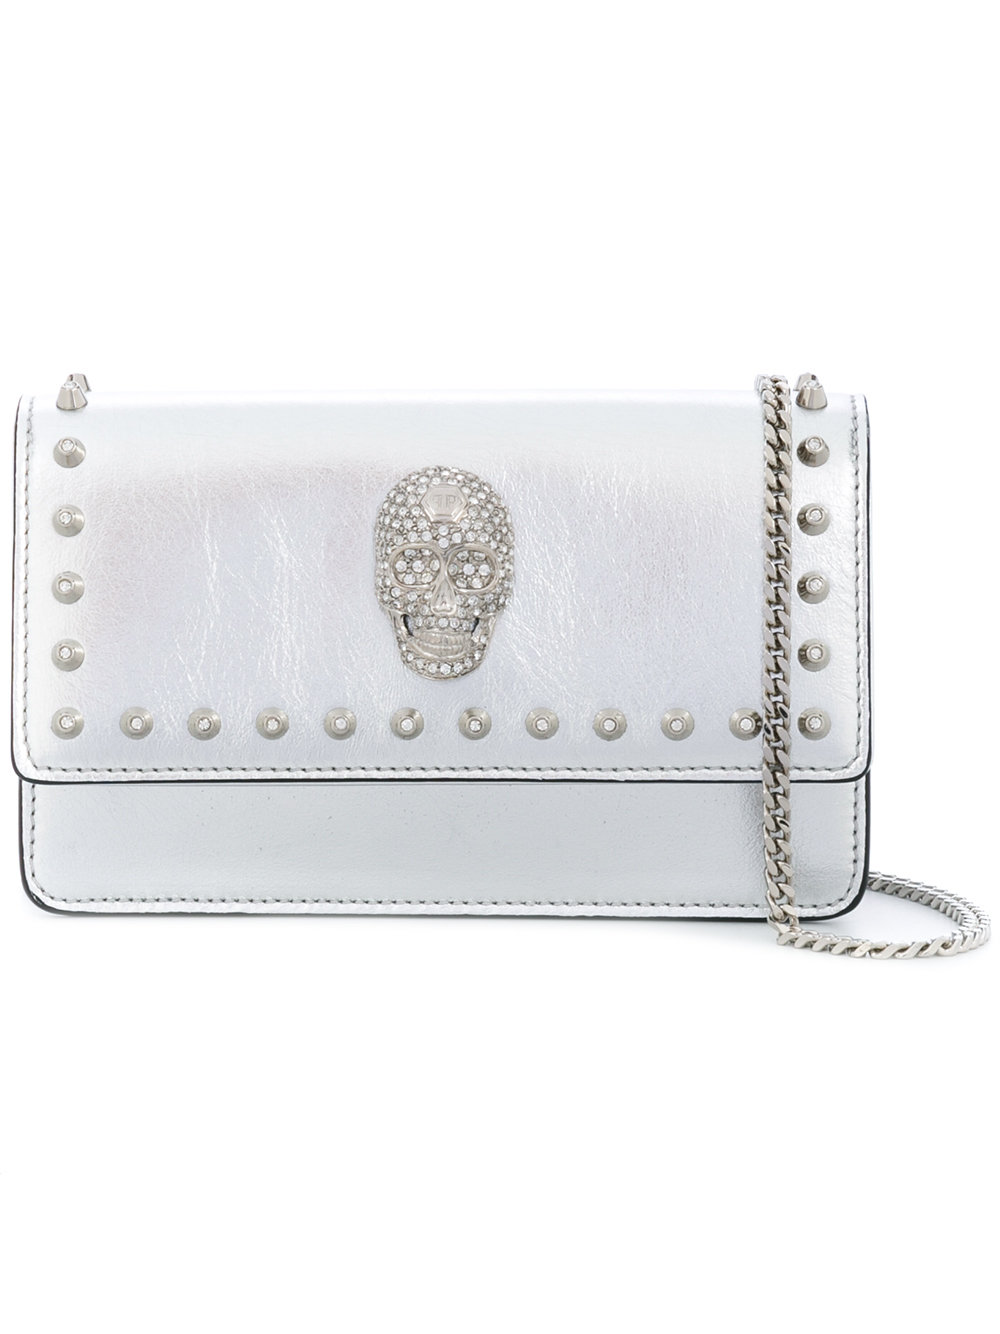 Philipp Plein MINI SHOULDER